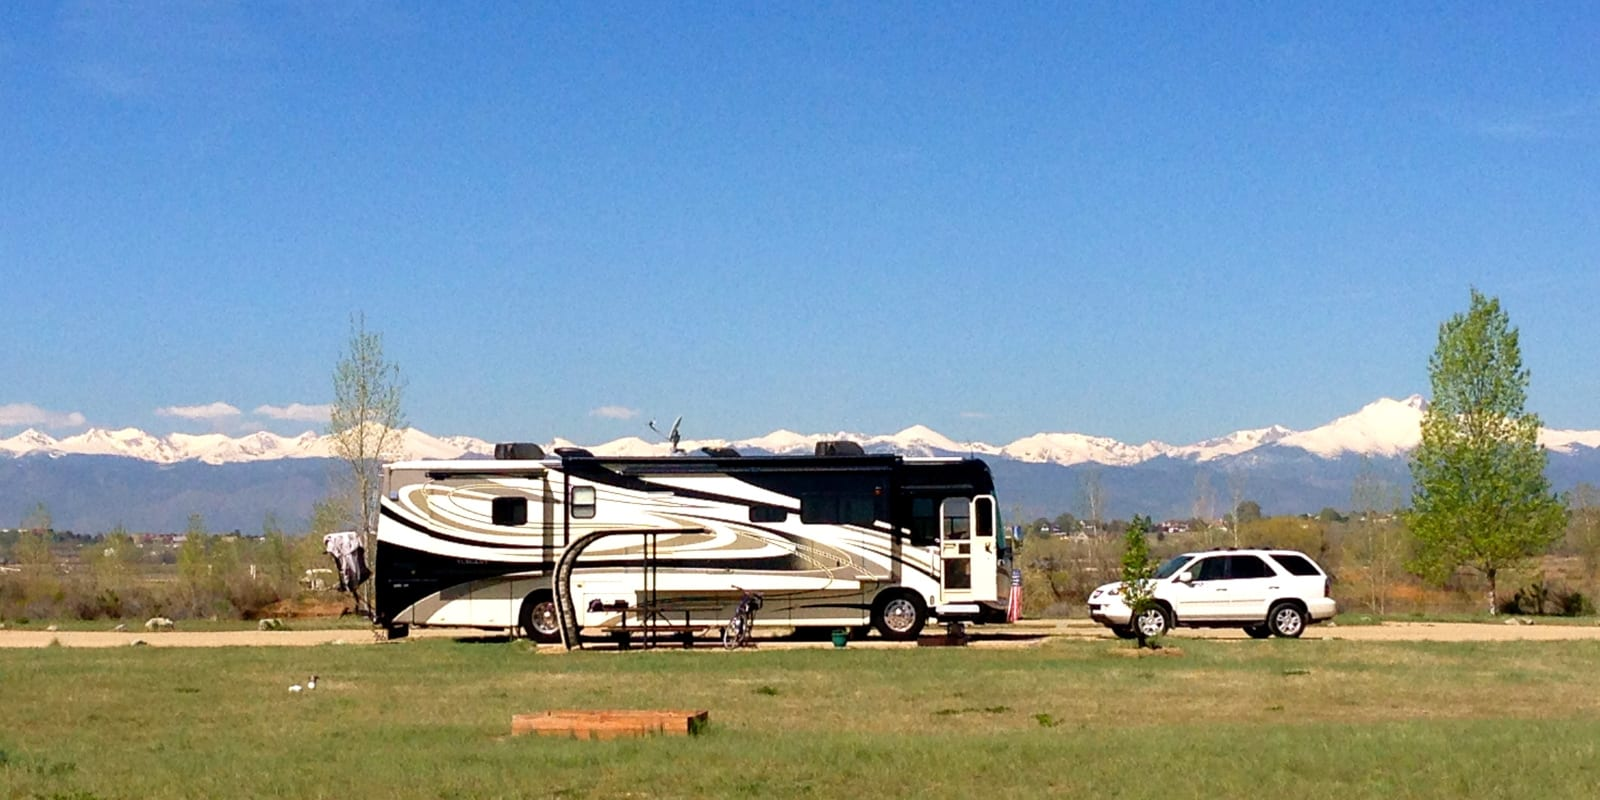 St Vrain State Park Firestone CO Campground RV